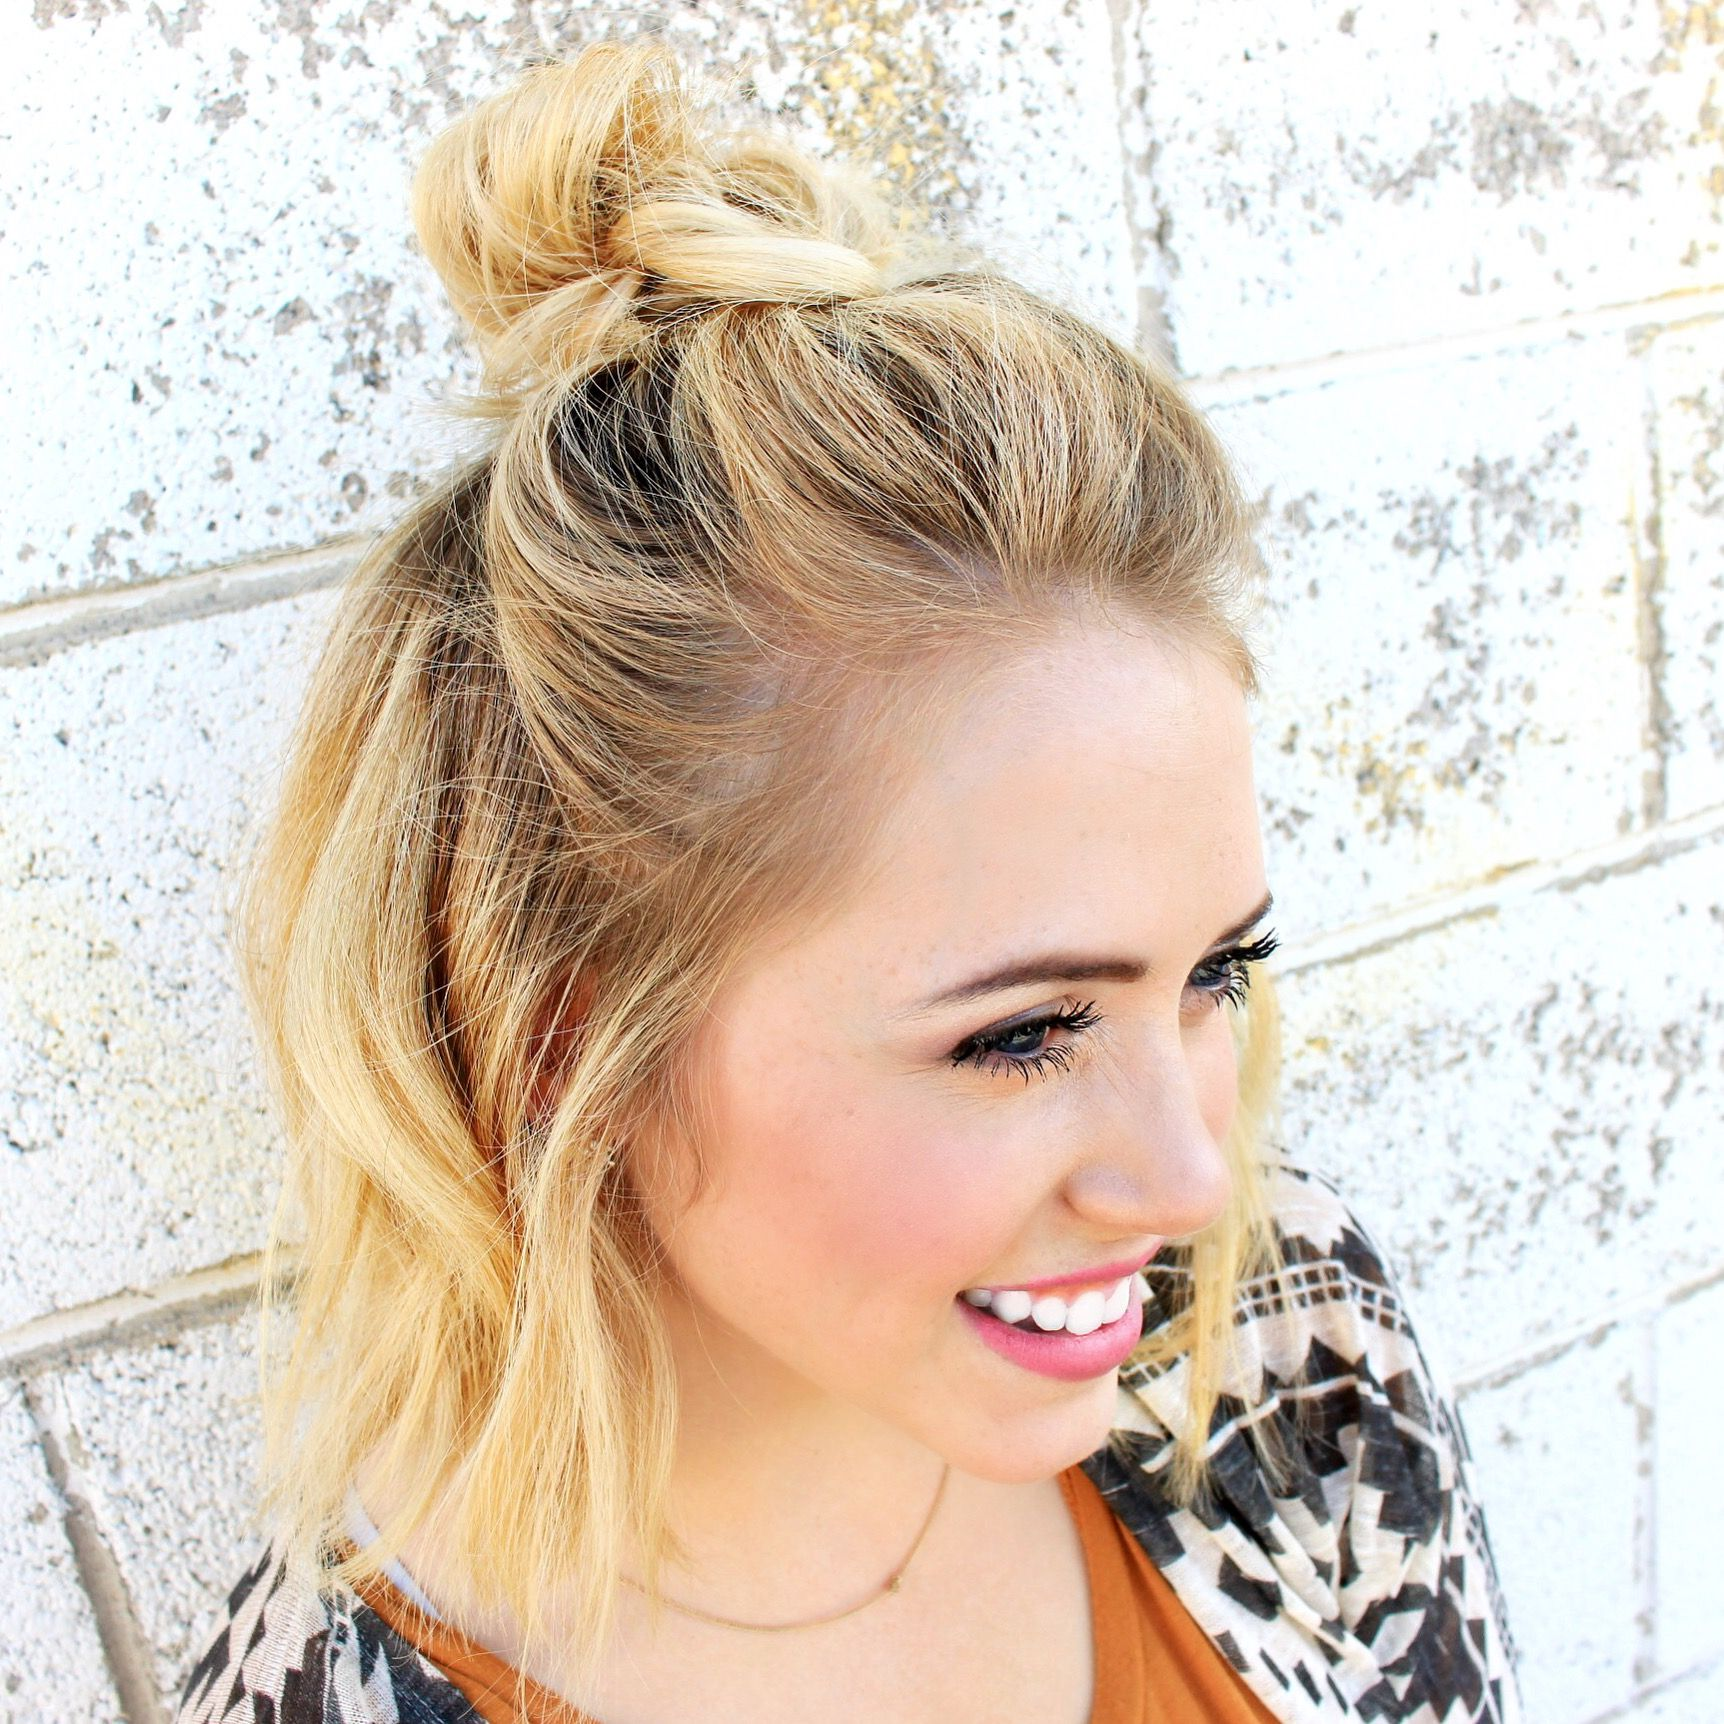 Having Short Hair Is So Much Fun When You Find Fun Things To Do With It I Uploaded A Video On My Youtube Channel Abou Easy Hairstyles Stylish Hair Hair Styles